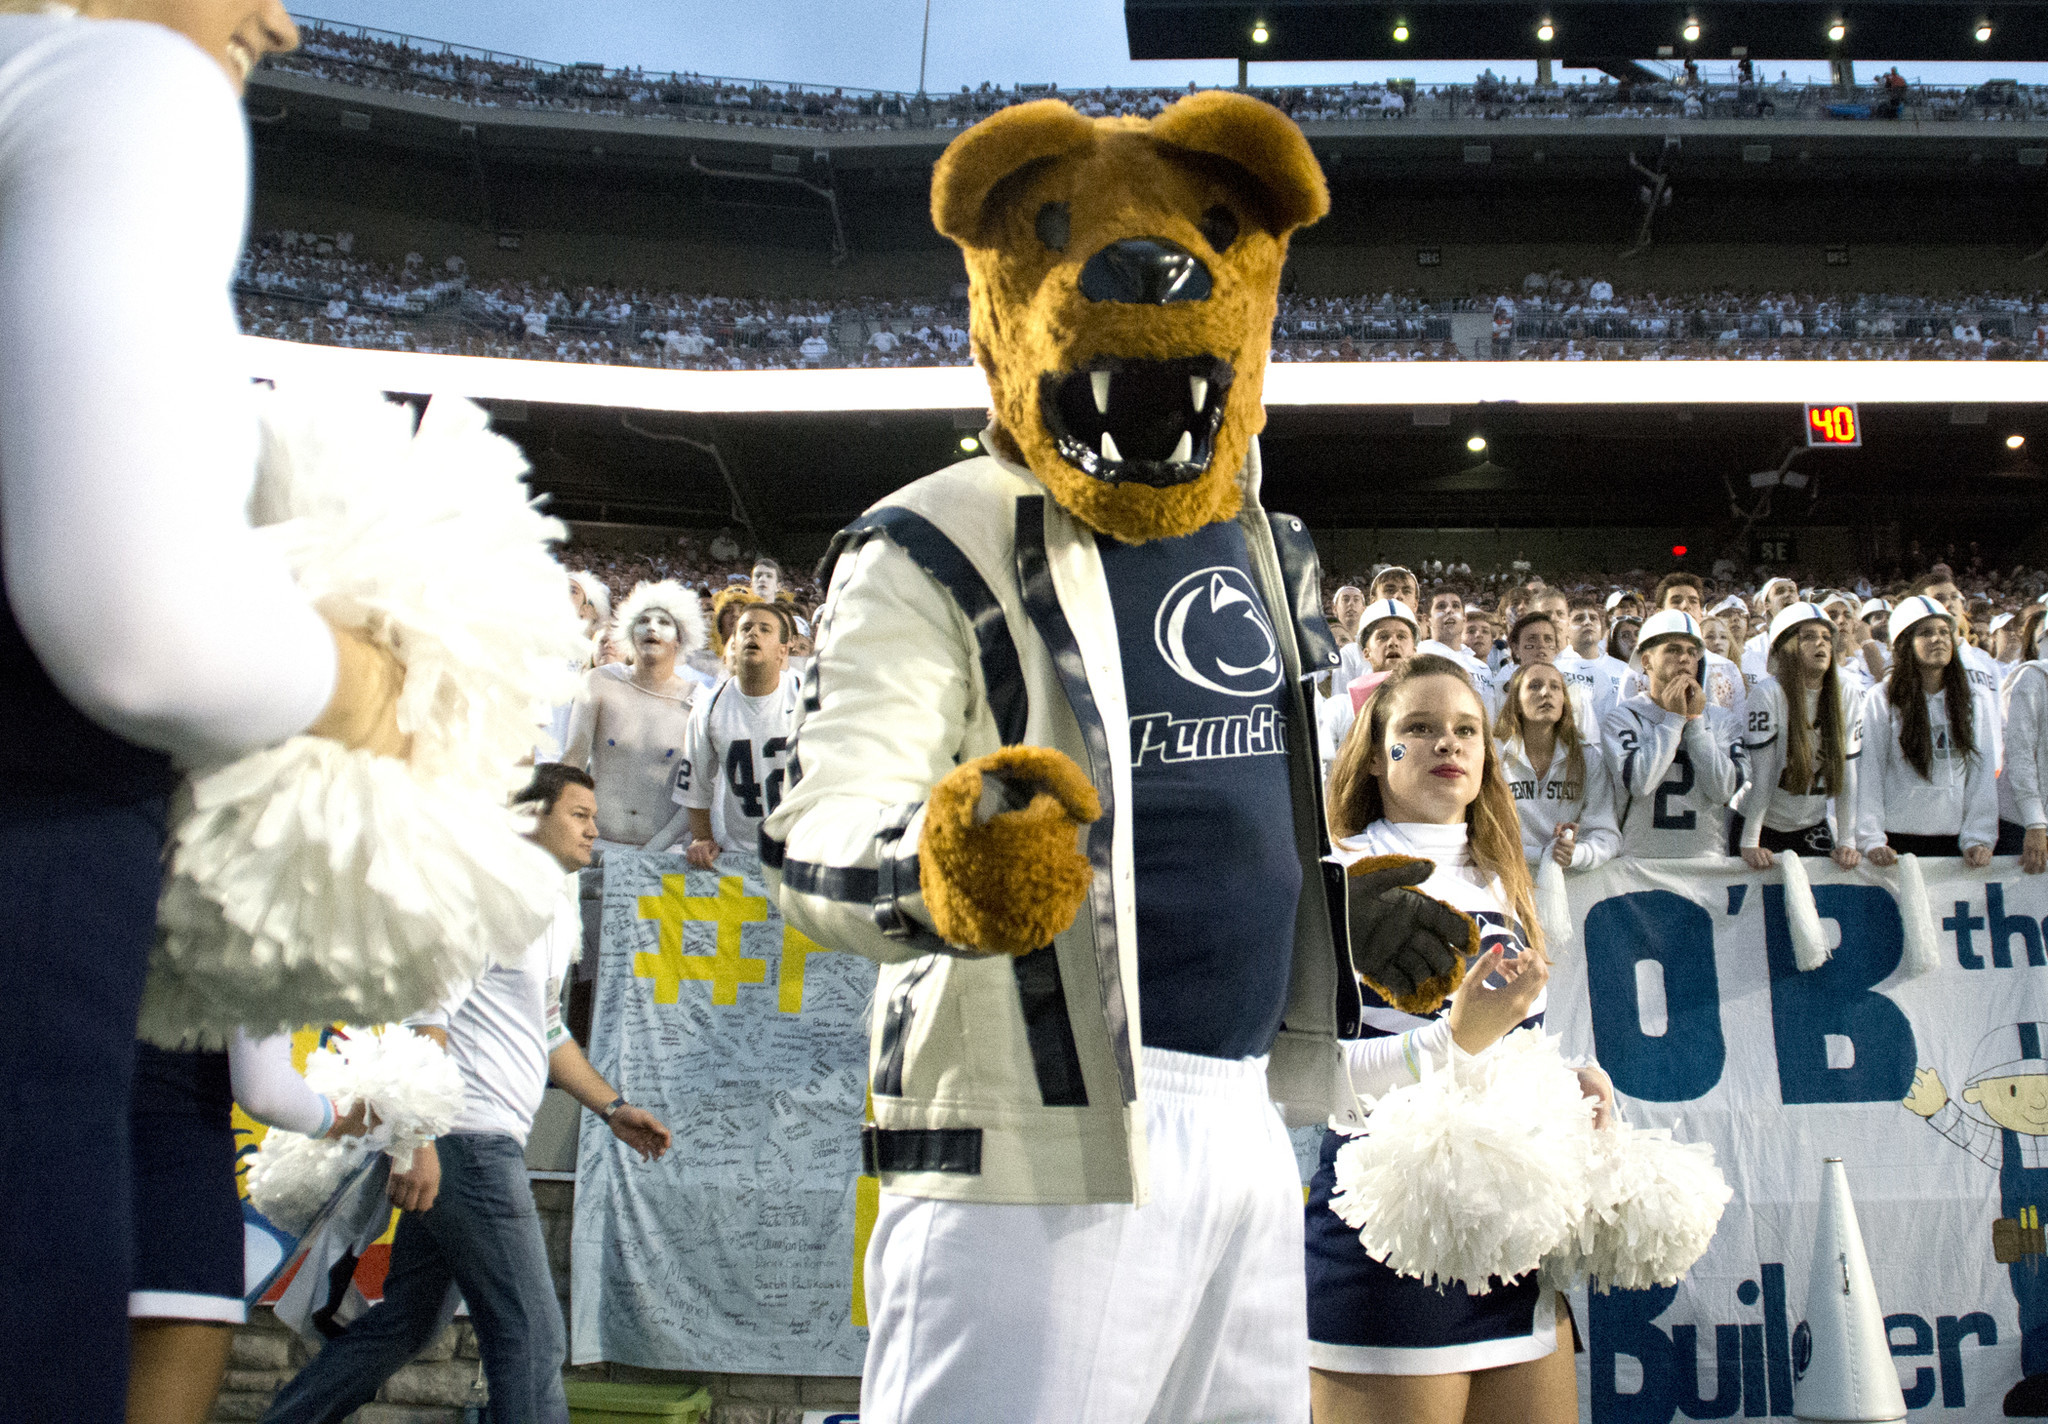 Penn State mascots reunite! The Nittany Lion is in the Mascot Hall of Fame - The Morning Call  sc 1 st  The Morning Call & Penn State mascots reunite! The Nittany Lion is in the Mascot Hall ...